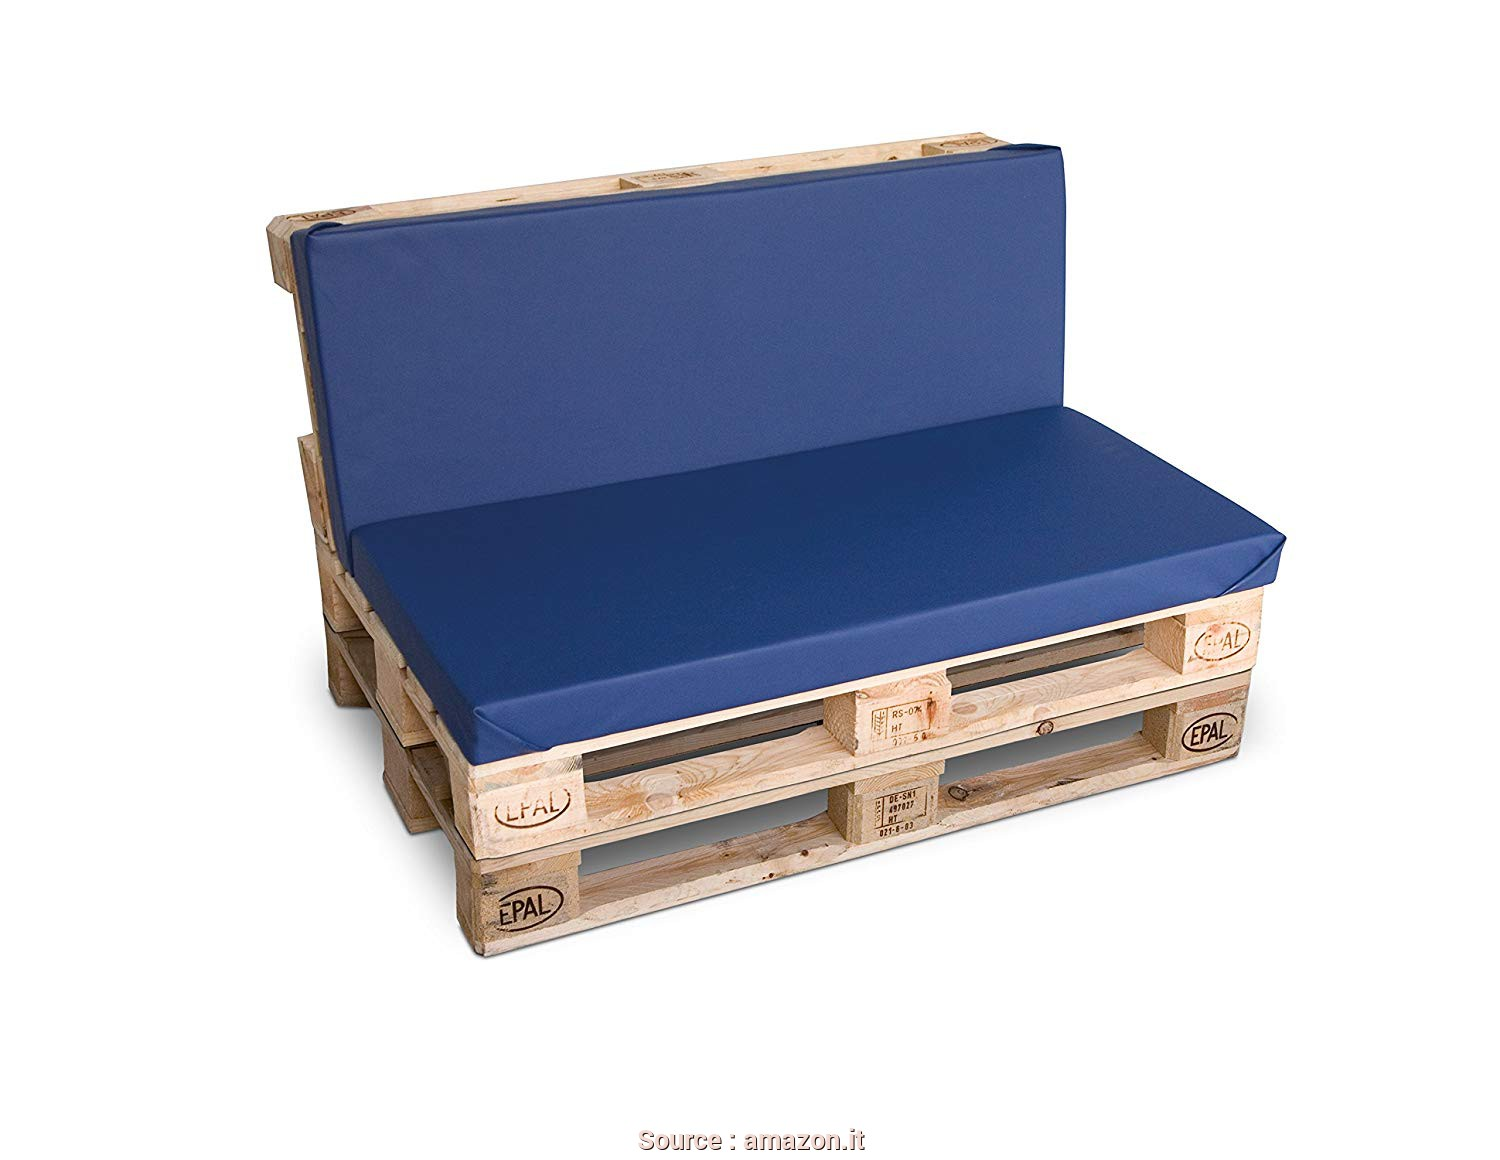 Divanetto Pallet Richiudibile, Eccellente CLC ARREDO Divanetto Pallet Richiudibile Made In Italy, Colore Neutro Naturale: Amazon.It: Casa E Cucina